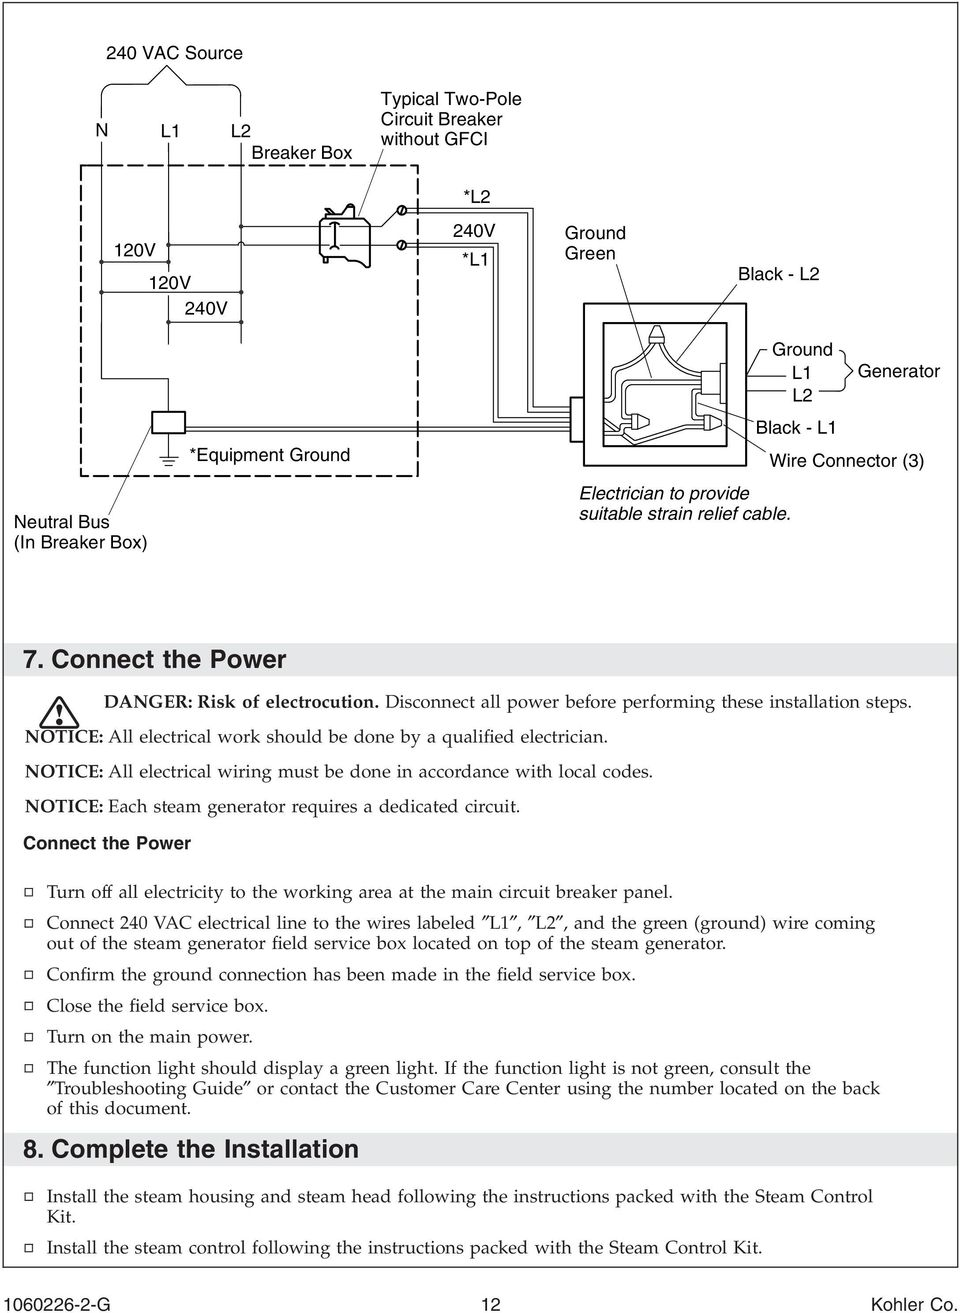 Disconnect all power before performing these installation steps. NOTICE: All electrical work should be done by a qualified electrician.